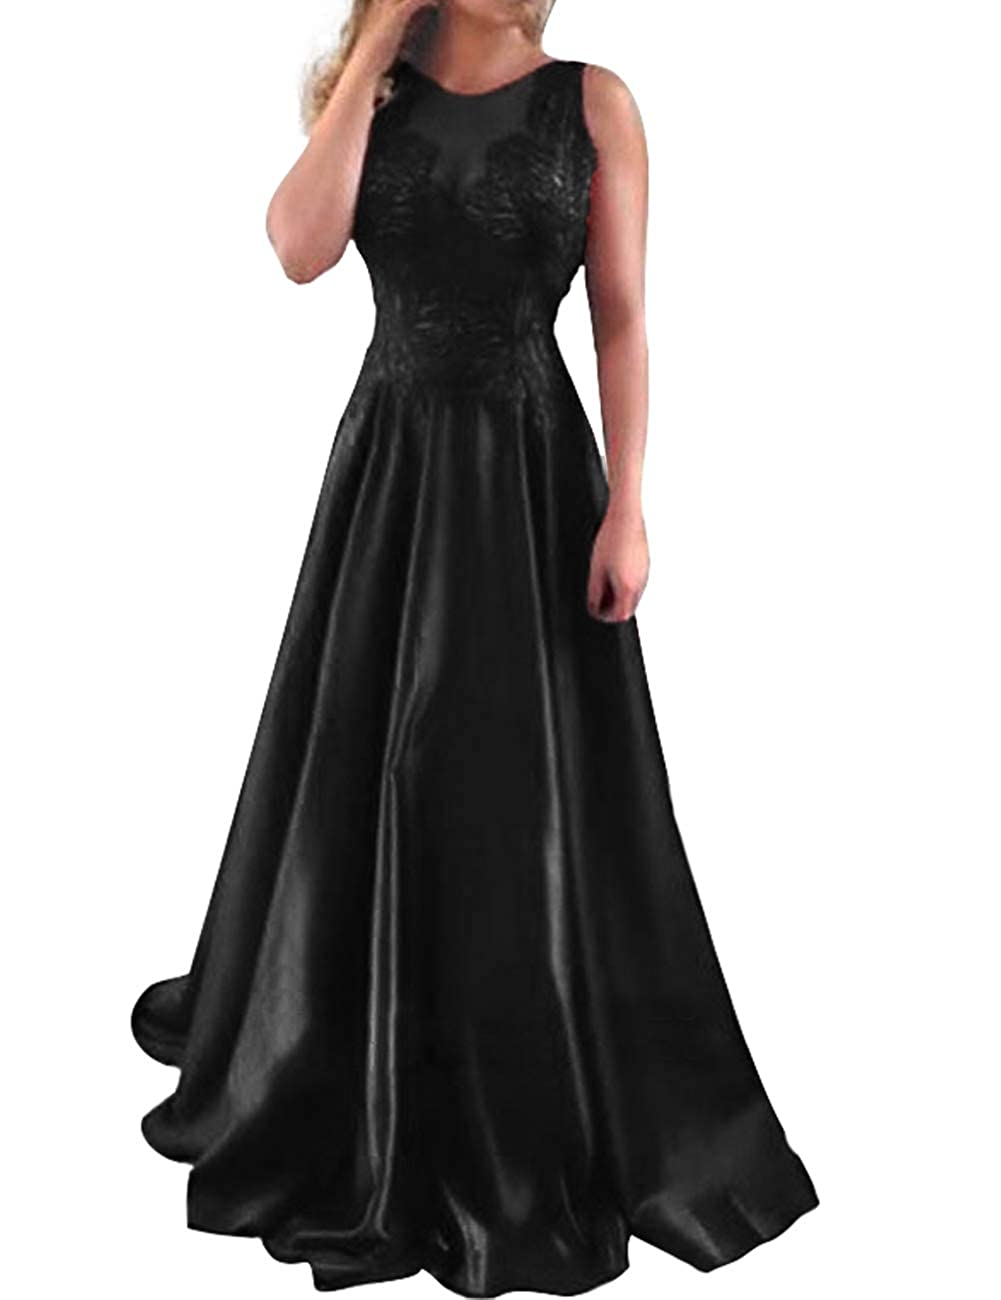 Black JAEDEN Prom Dresses Long 2019 Formal Evening Dresses Satin Prom Dress Gown Lace Evening Dress Gowns Open Back